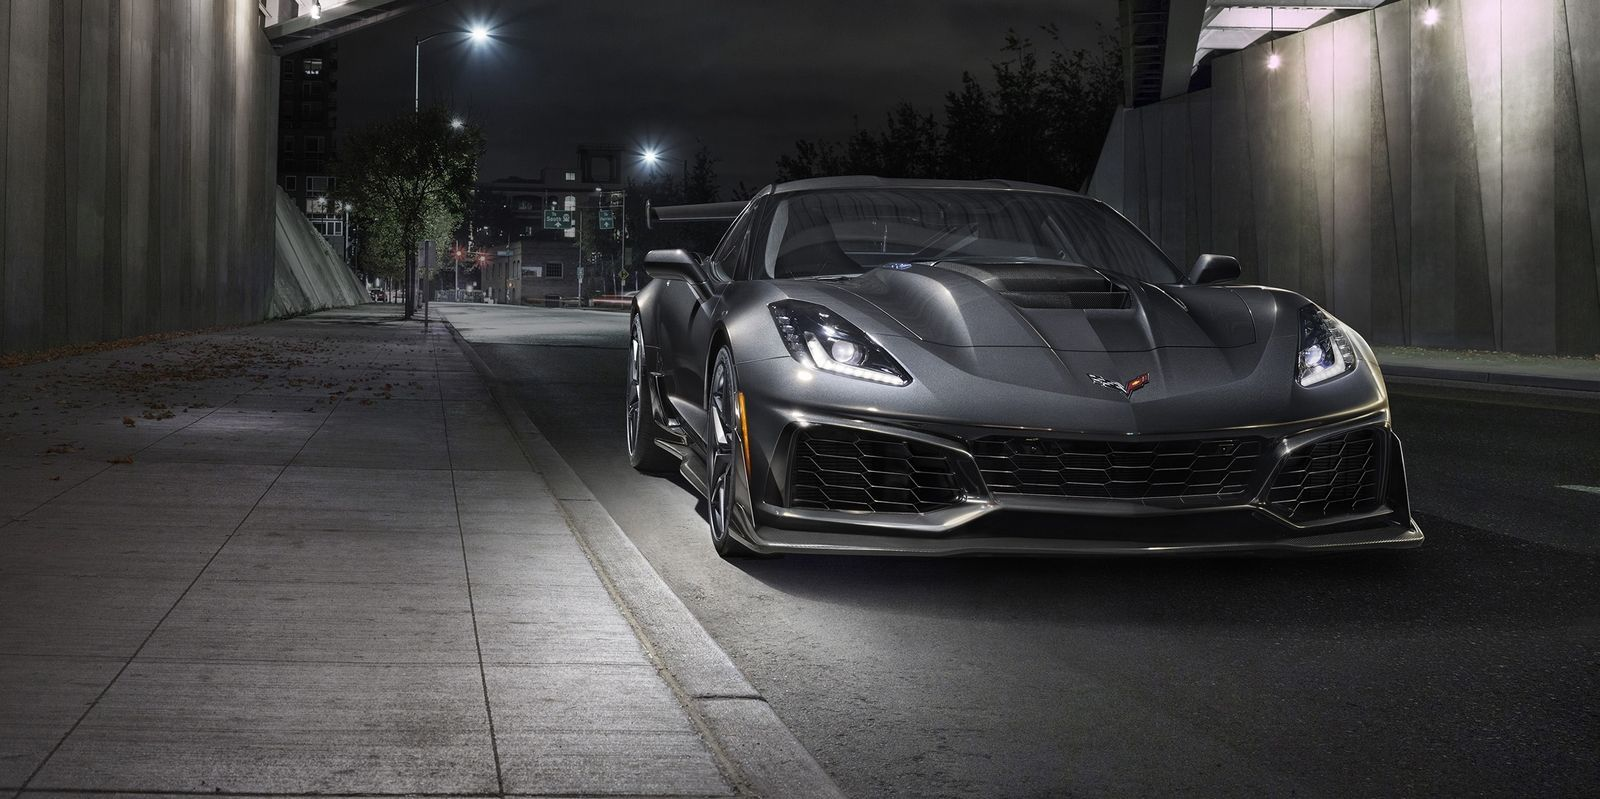 2019 Chevrolet Corvette ZR1 Here It Is, In All its 755HP